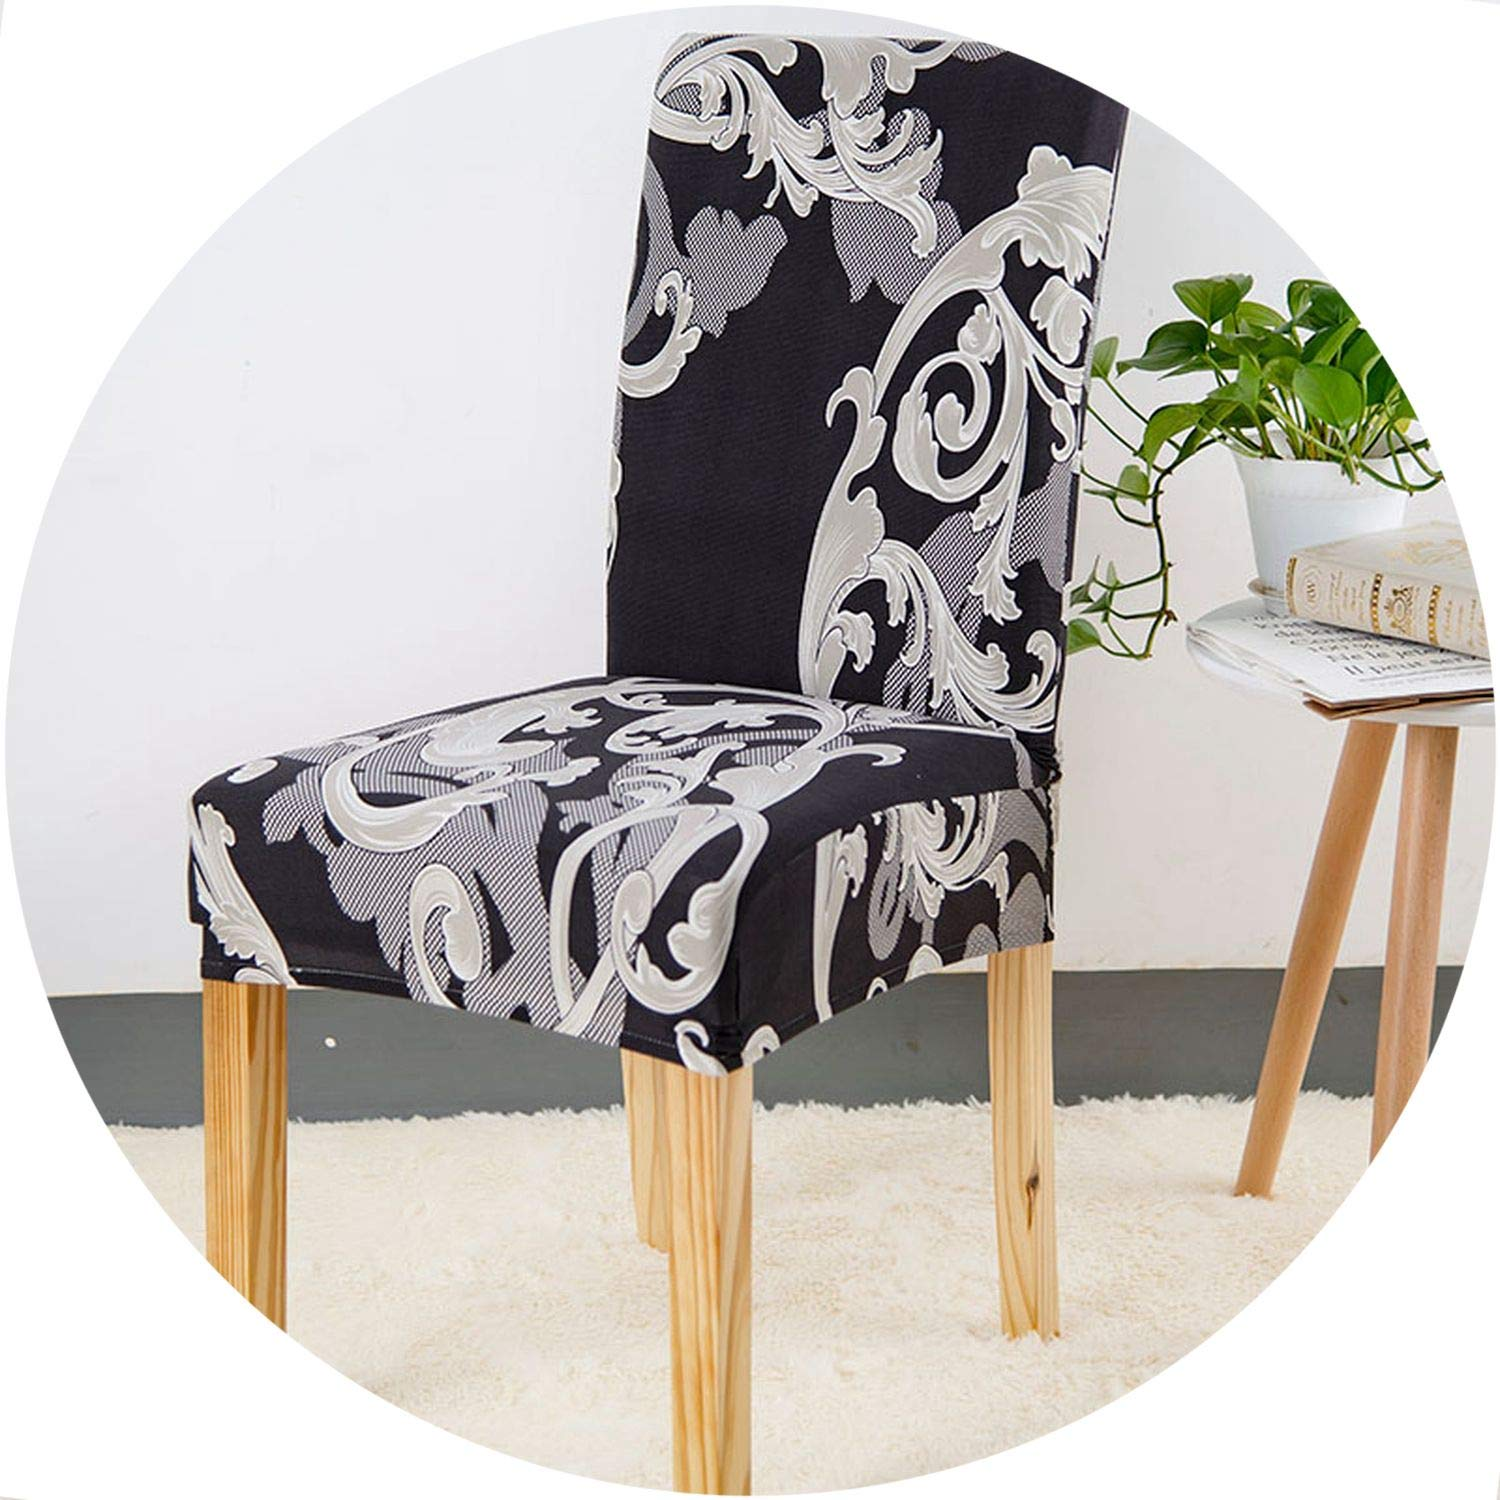 Amazon.com: better-caress Fl Printing Anti-Dirty Stretch Chair ...